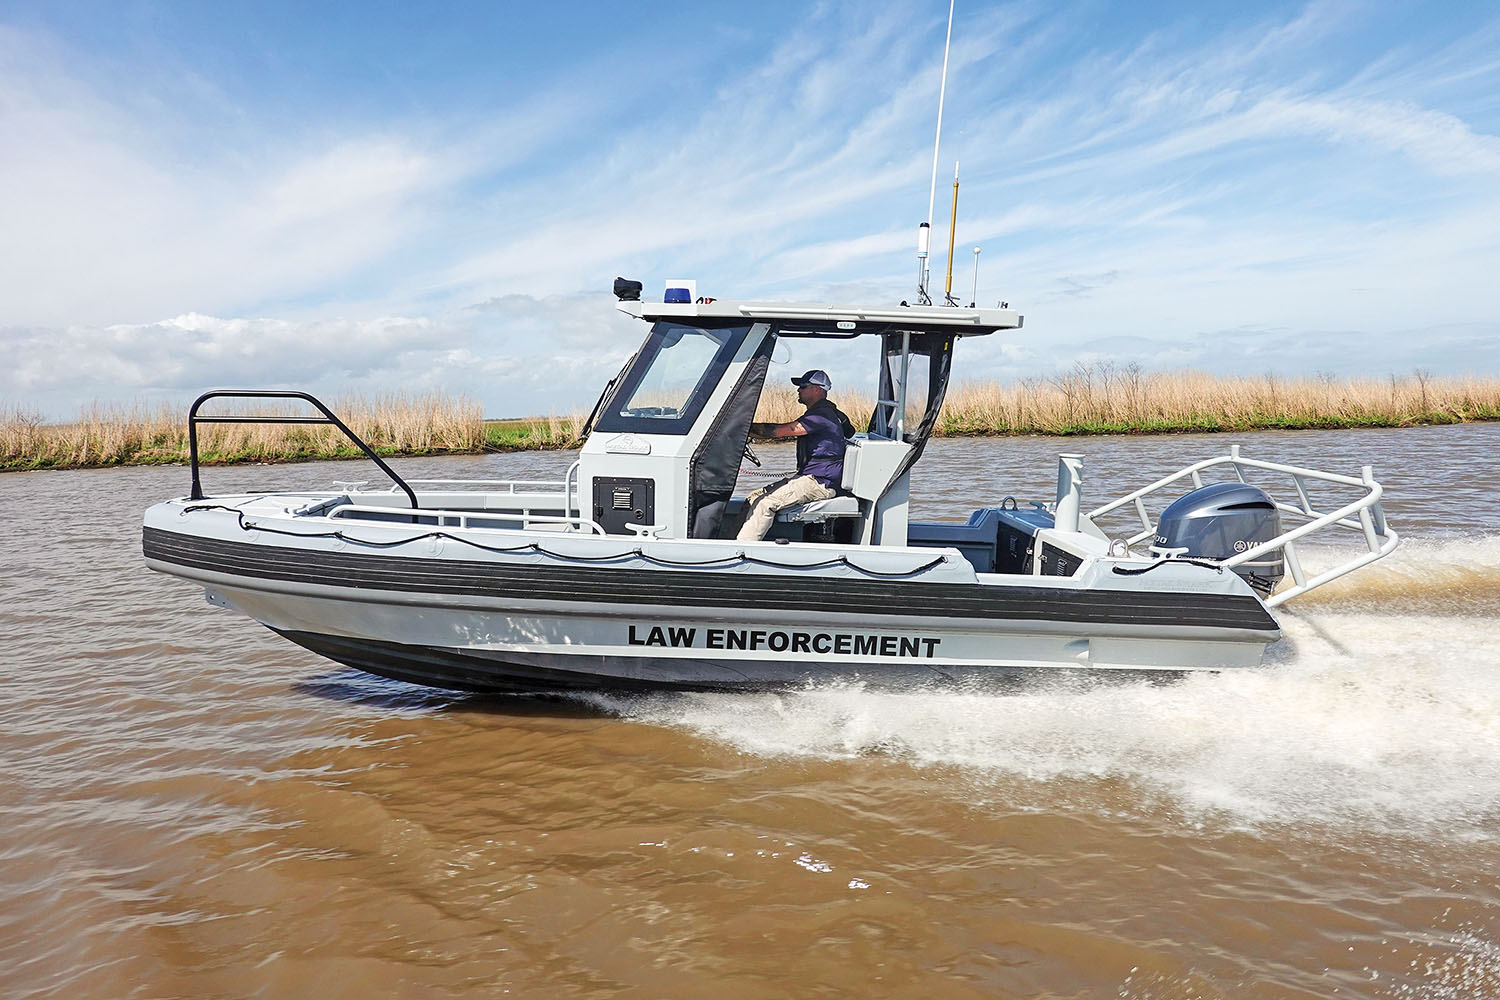 A Metal Shark 23 Relentless patrol boat, part of a five-boat fleet soon to be delivered to Ohio Department of Natural Resources. (Photo courtesy of Metal Shark)